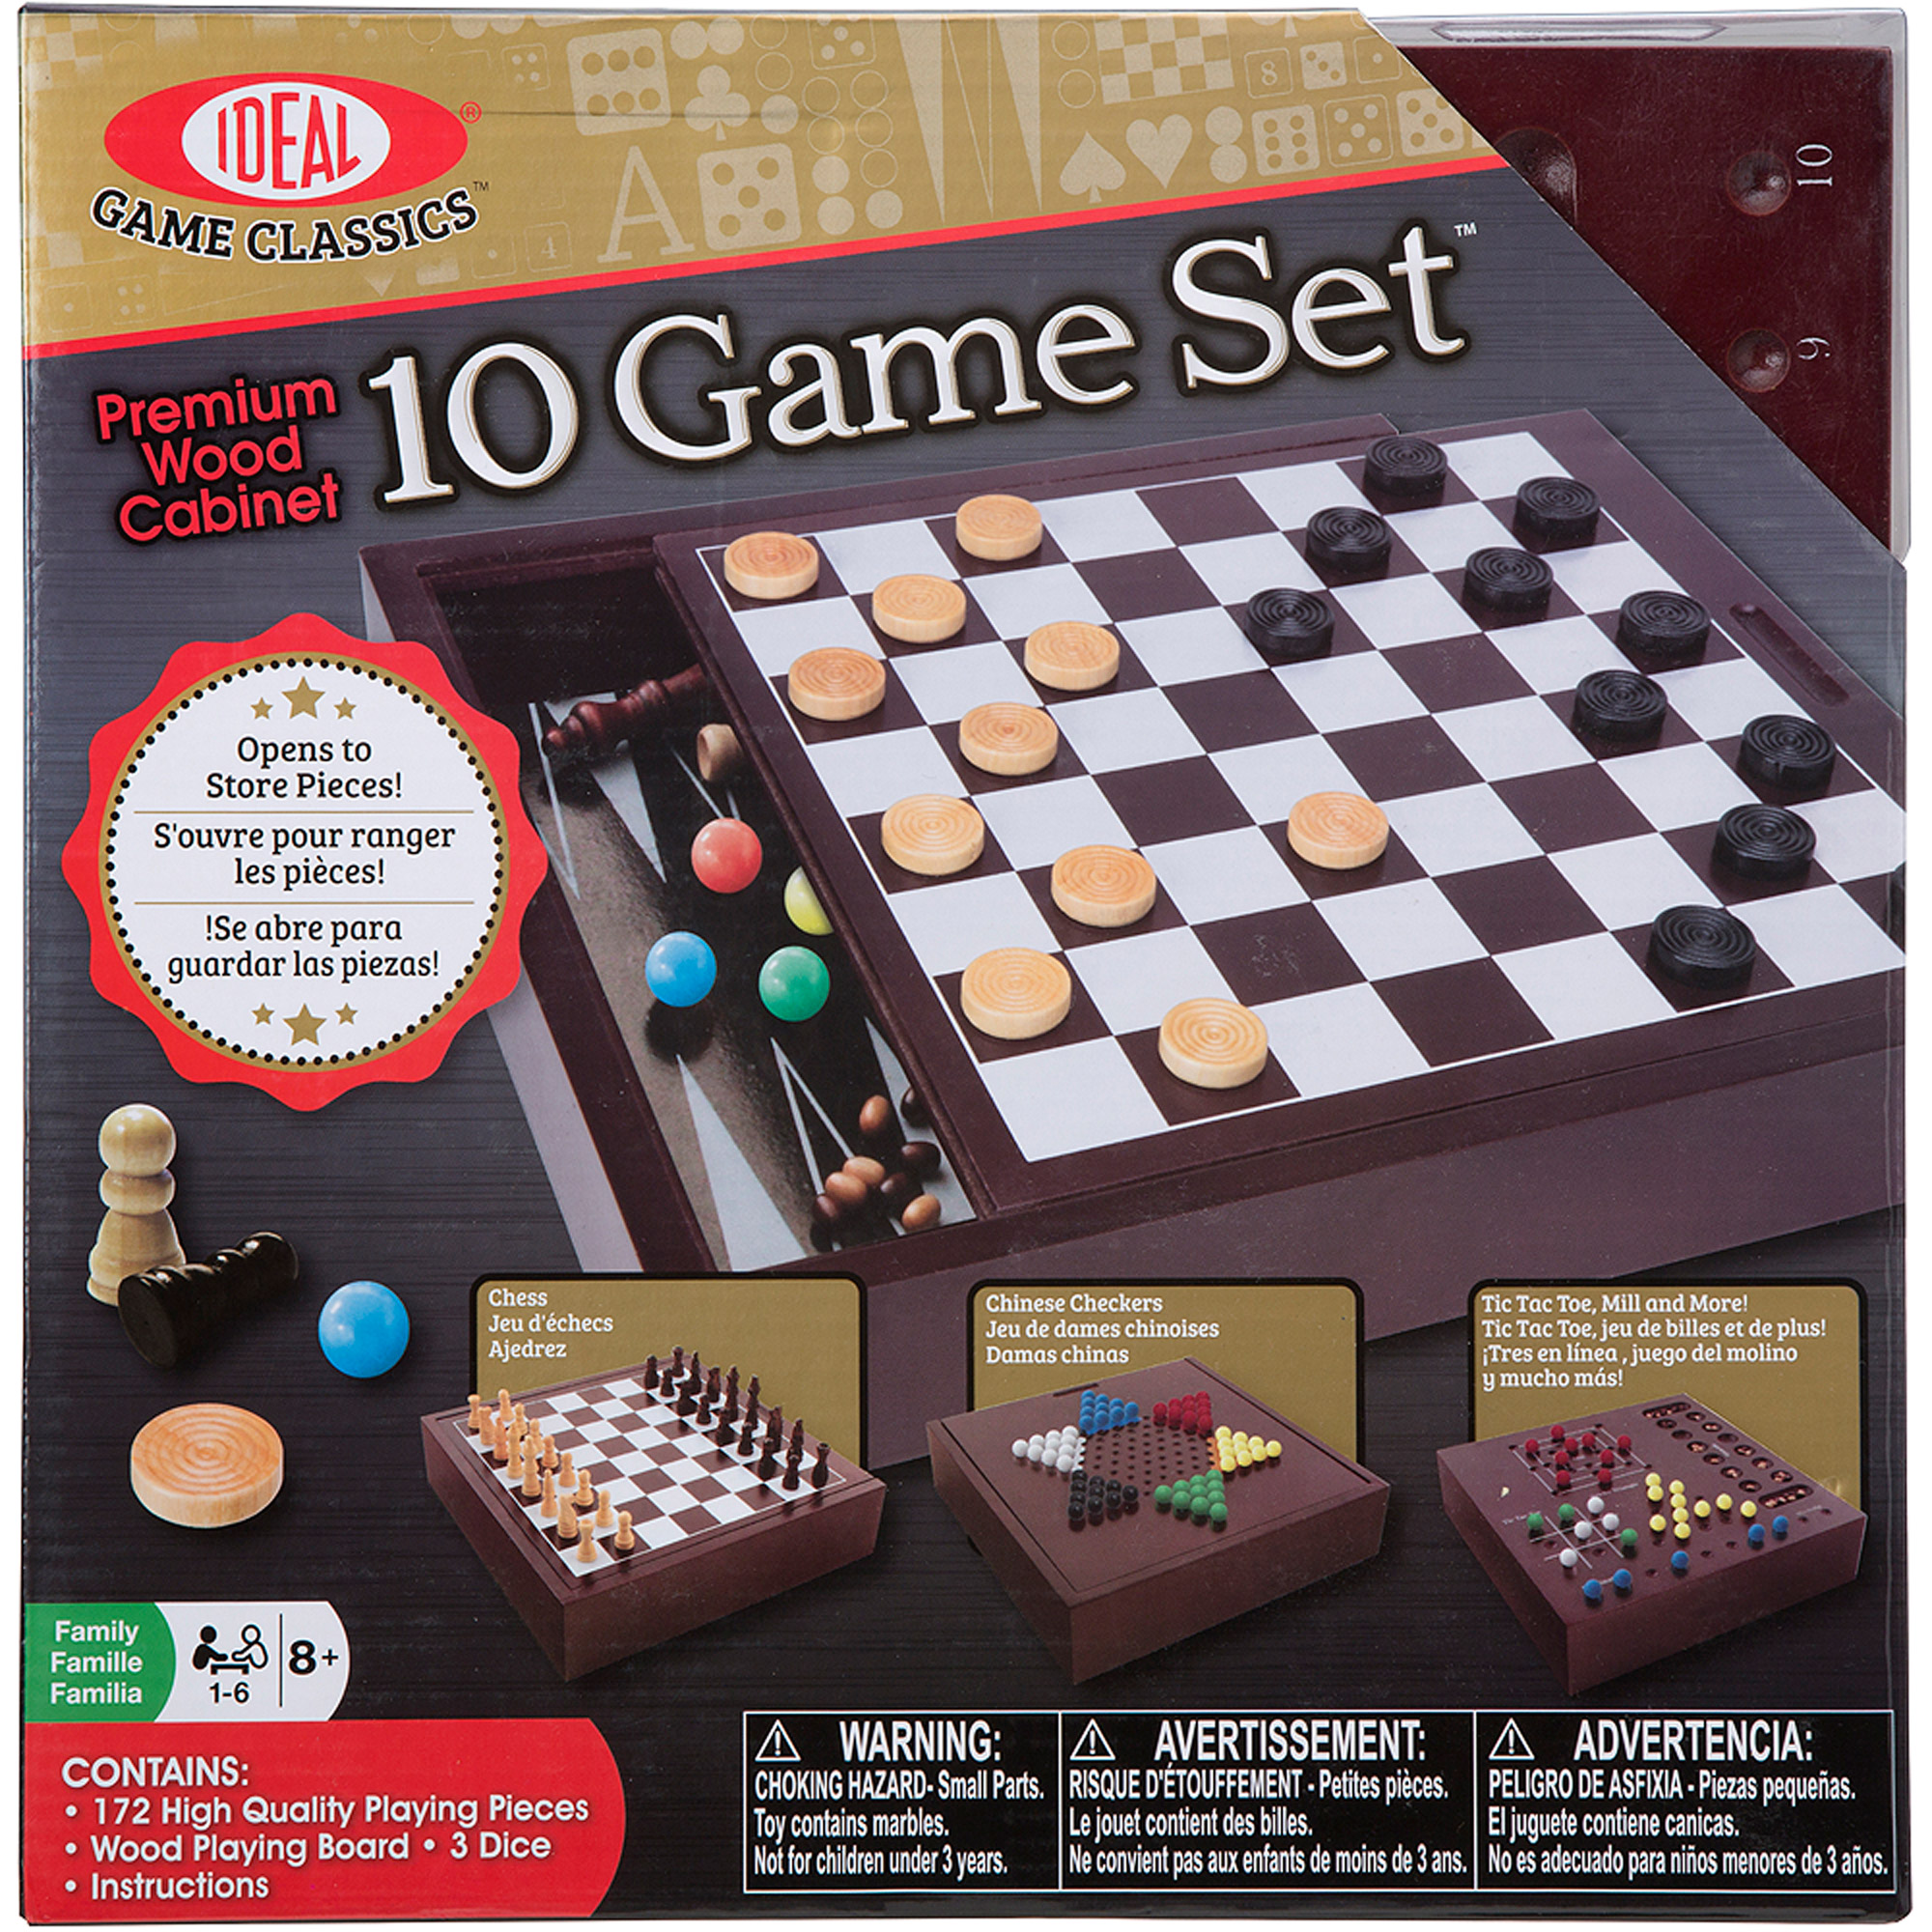 Ideal Premium Wood Box 10 Game Set